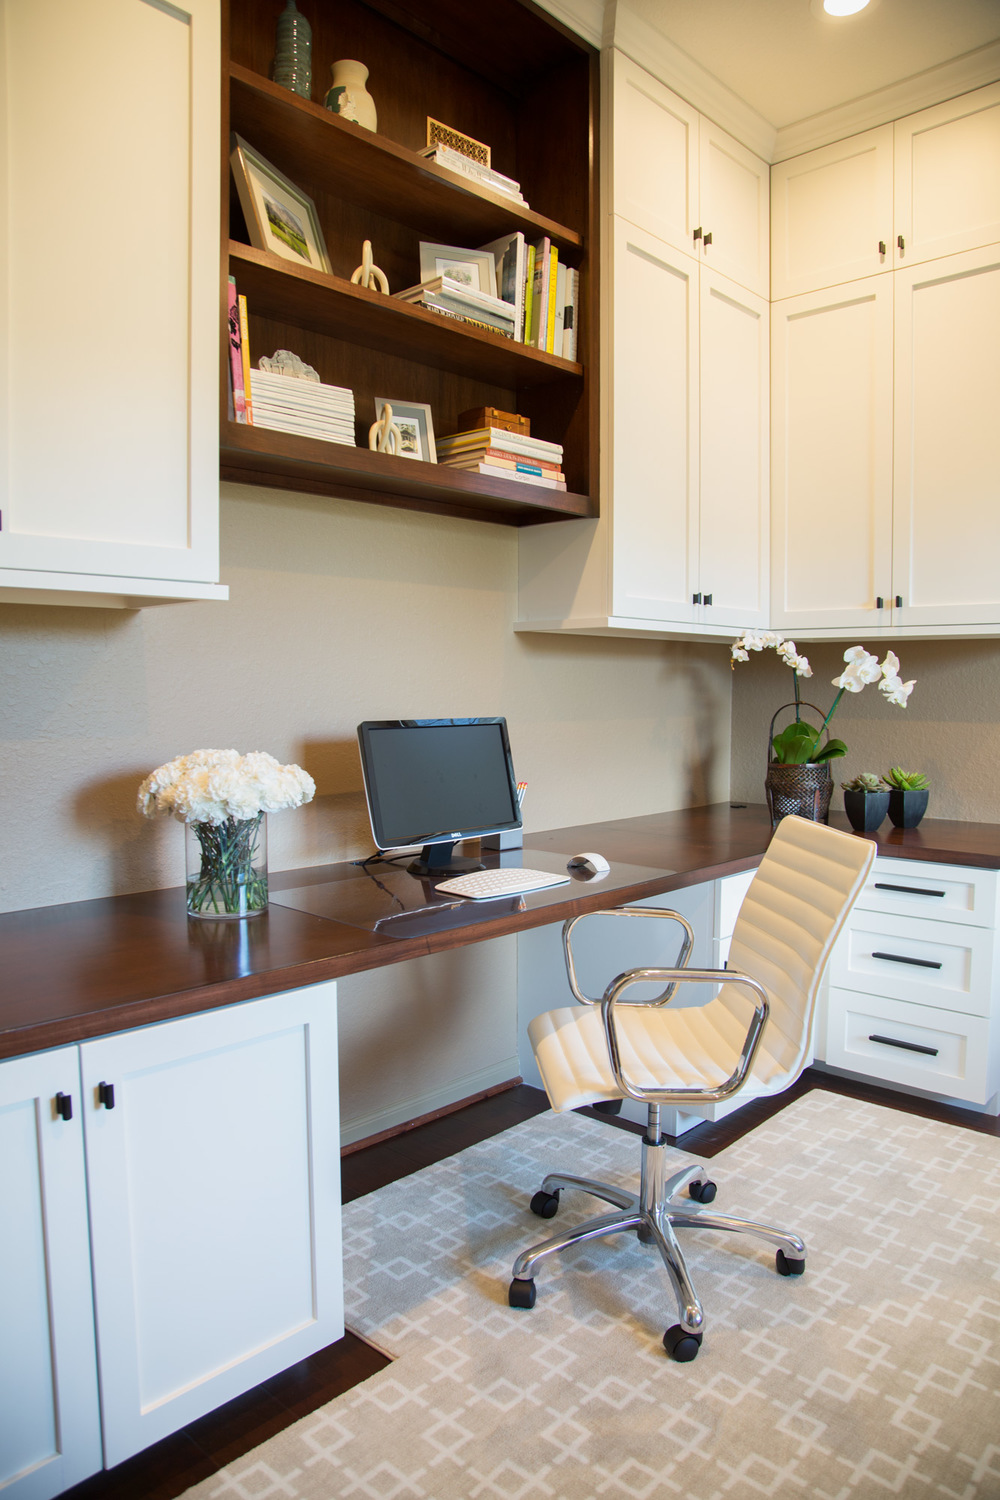 Home office remodel; desk; chair; rug; cabinetry; bookshelf decor | Interior Designer: Carla Aston /  Photography by Tori Aston